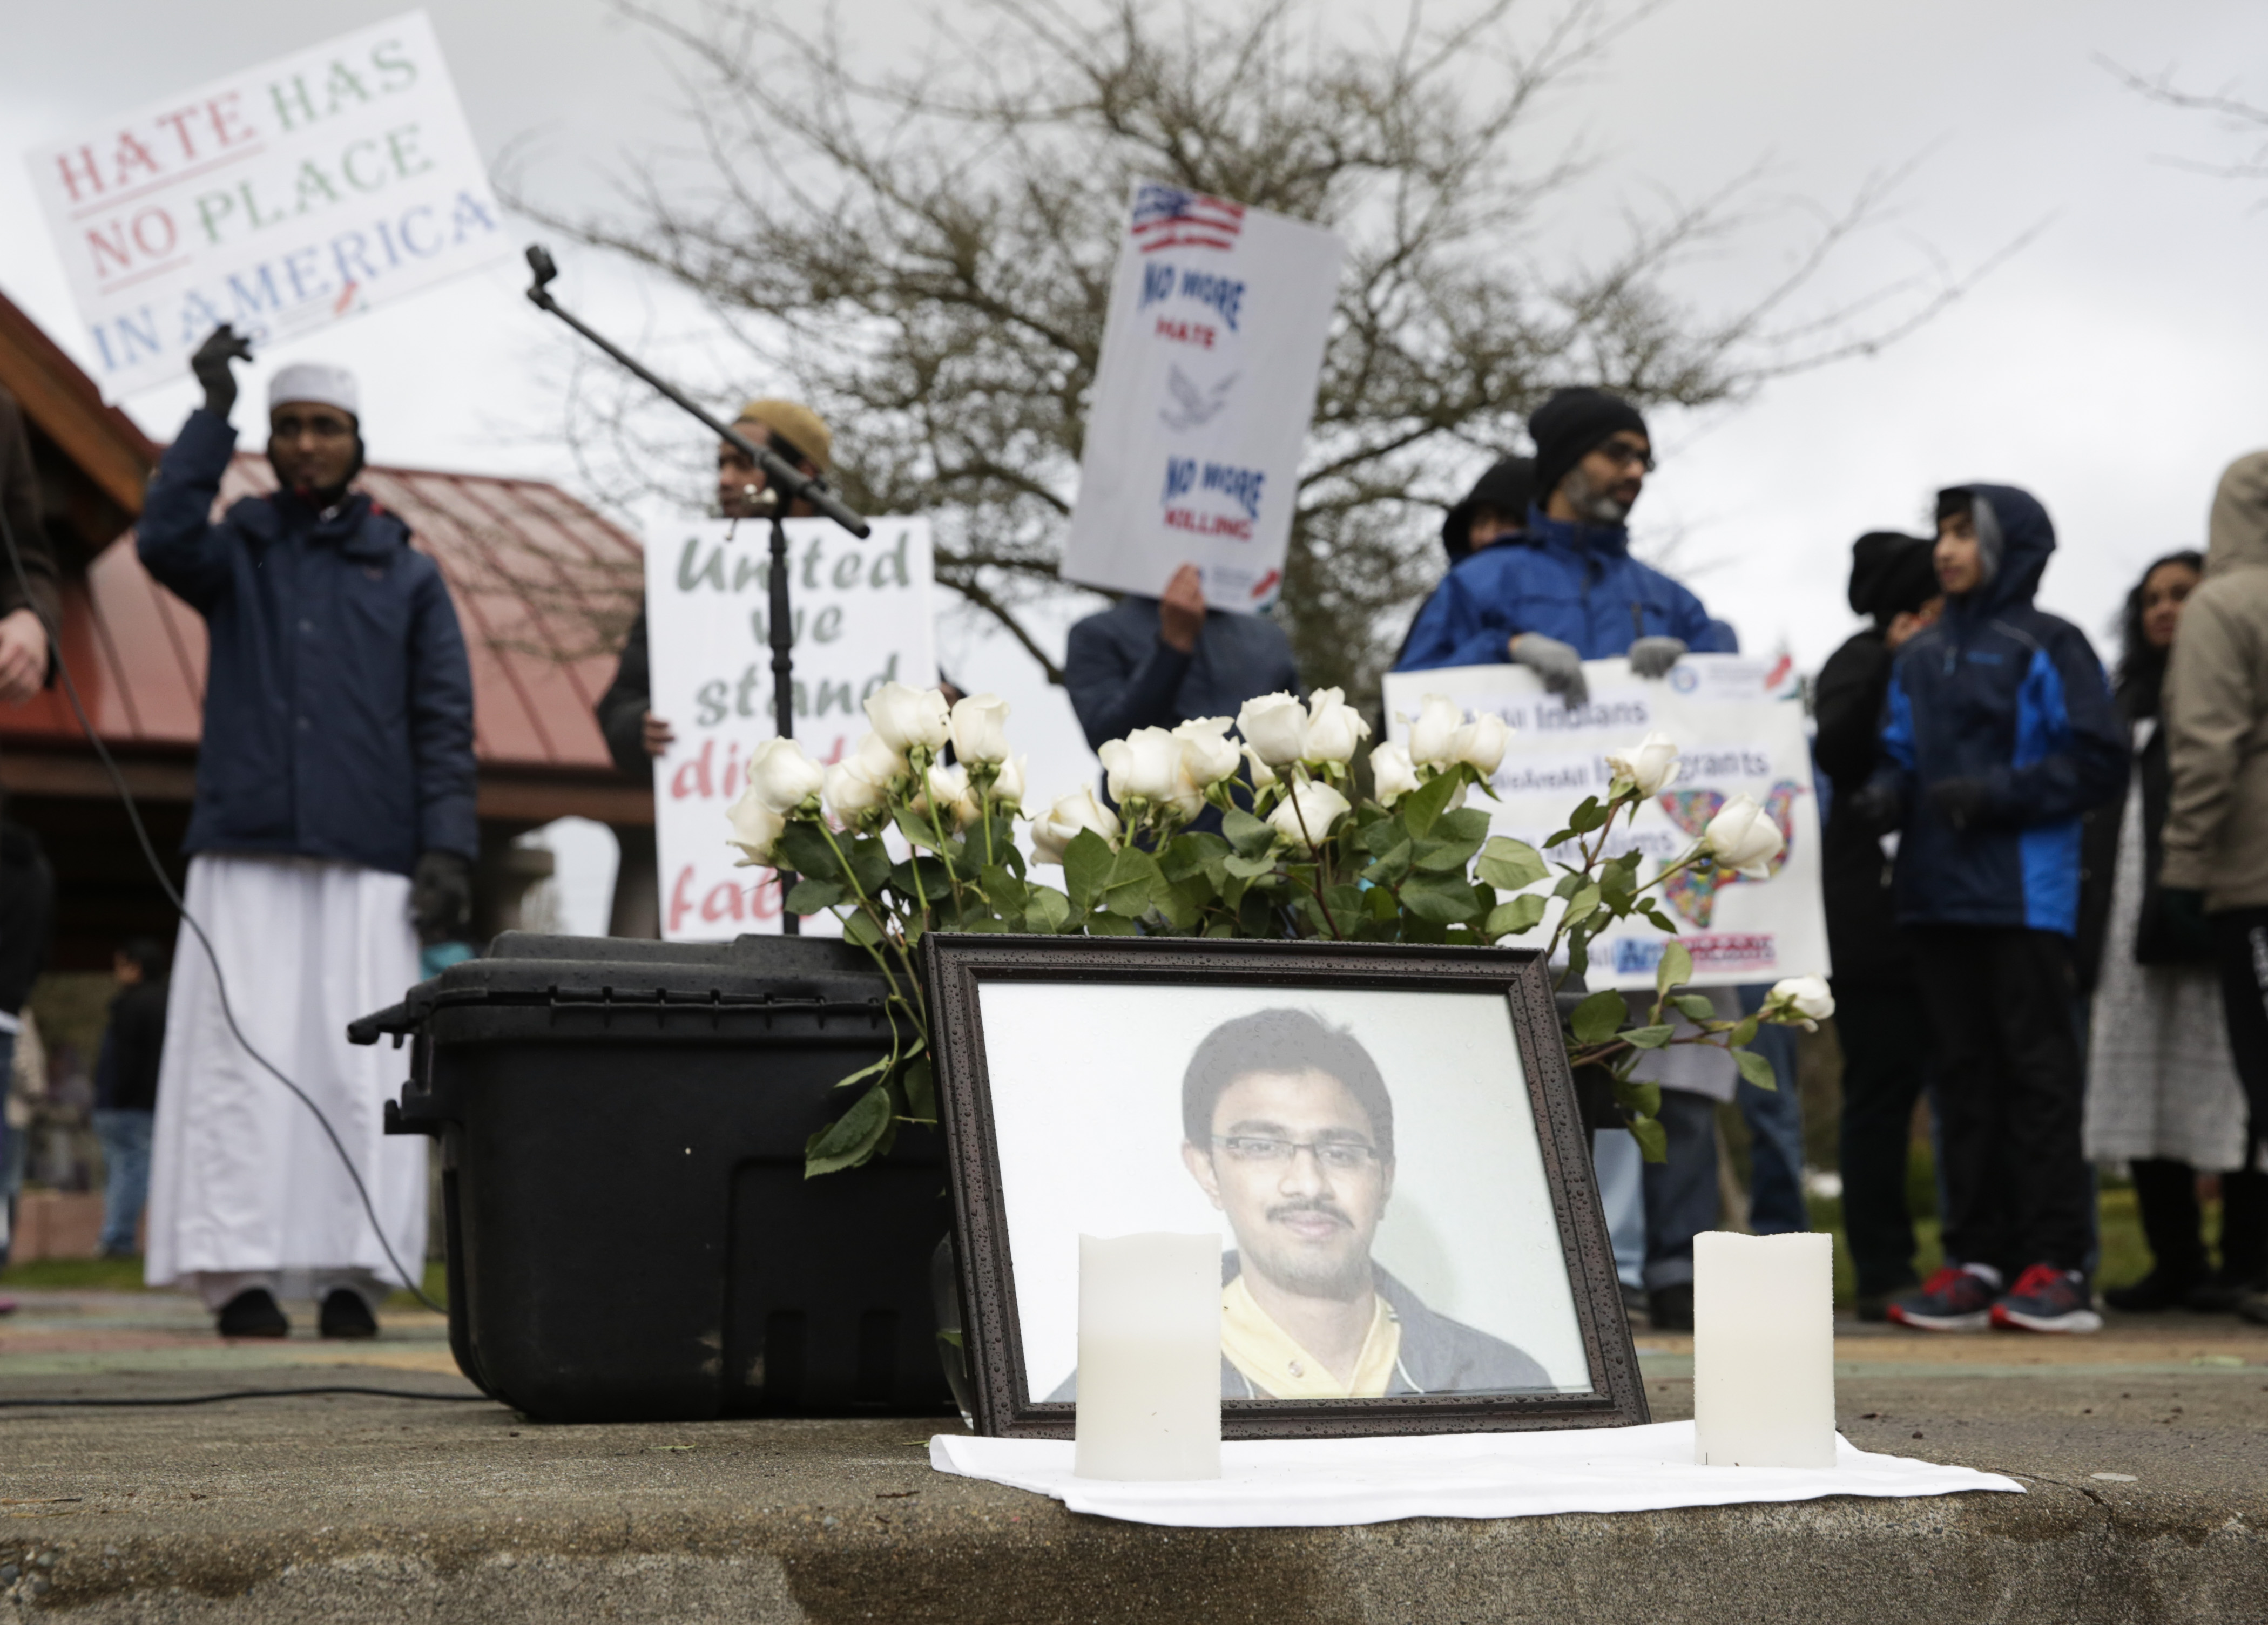 A photo of Srinivas Kuchibhotla, the 32-year-old Indian engineer killed at a bar in Olathe, Kansas, is pictured during a peace vigil in Bellevue, Washington on March 5, 2017